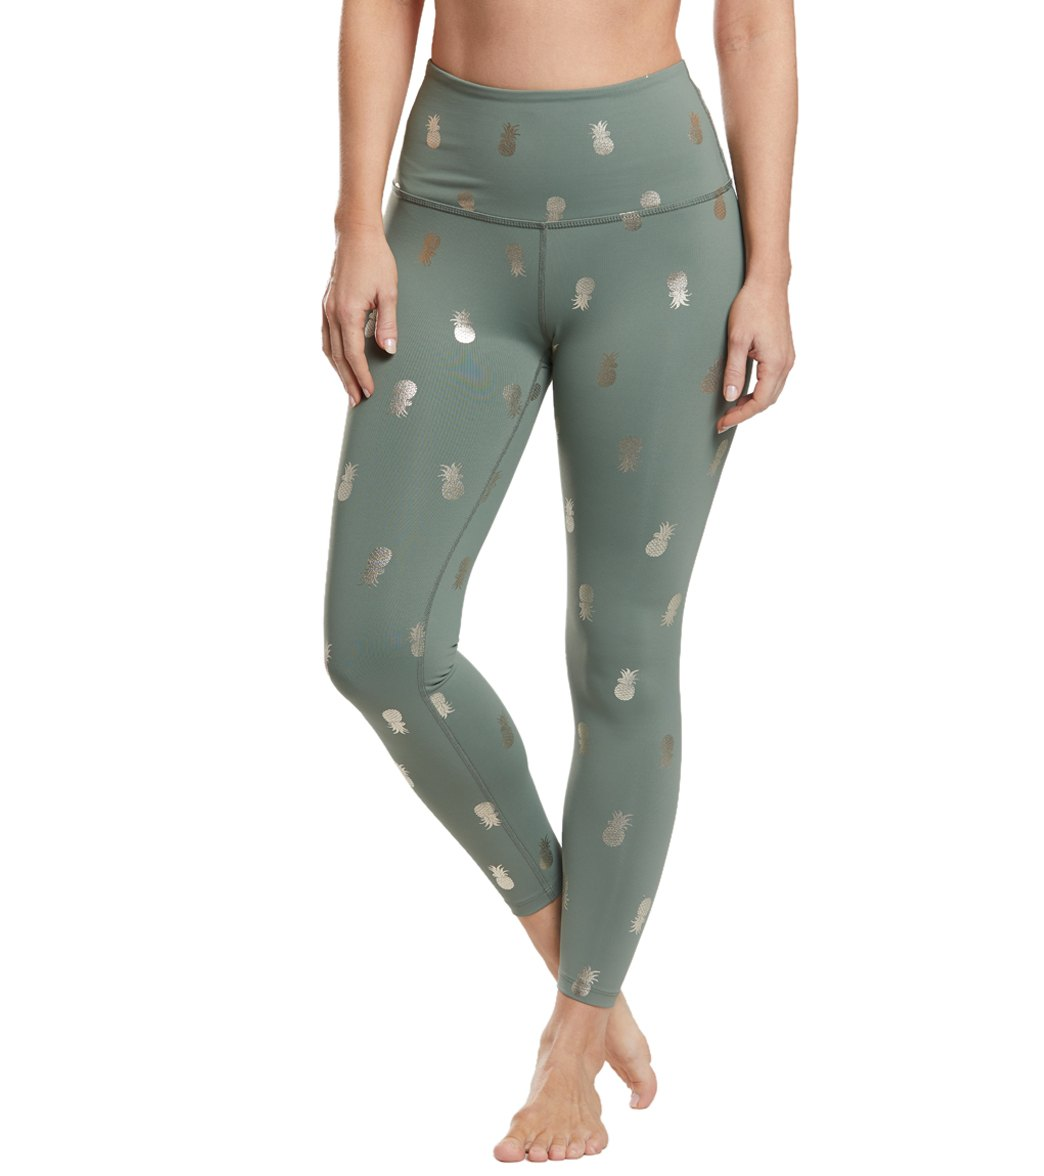 56a980bd2371f2 Beyond Yoga Pineapple High Waisted 7/8 Yoga Leggings at YogaOutlet.com - Free  Shipping